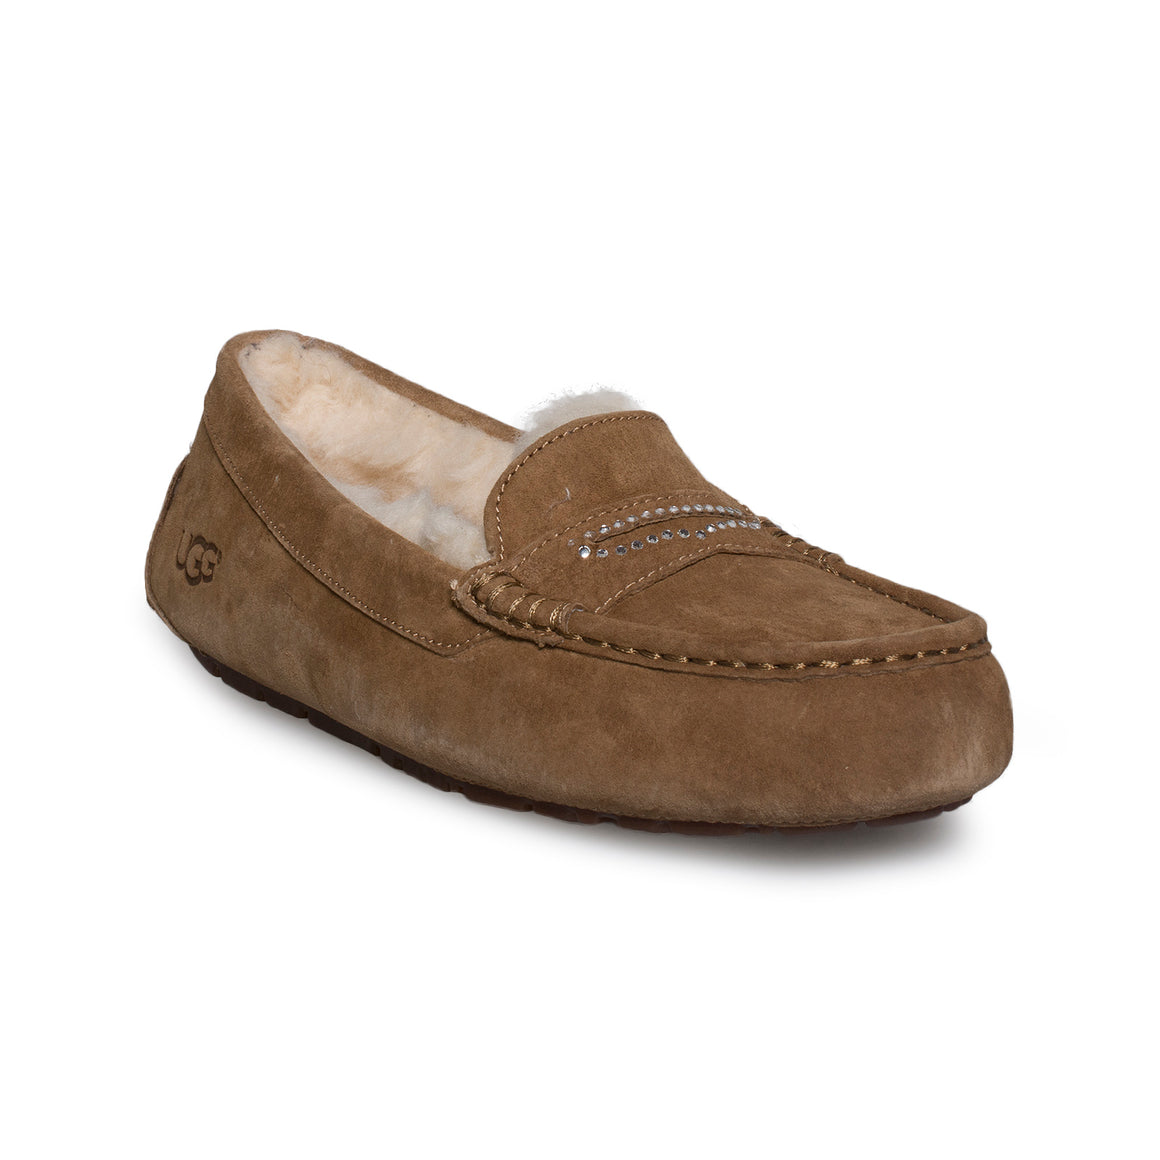 UGG Violette Sparkle Chestnut Slippers